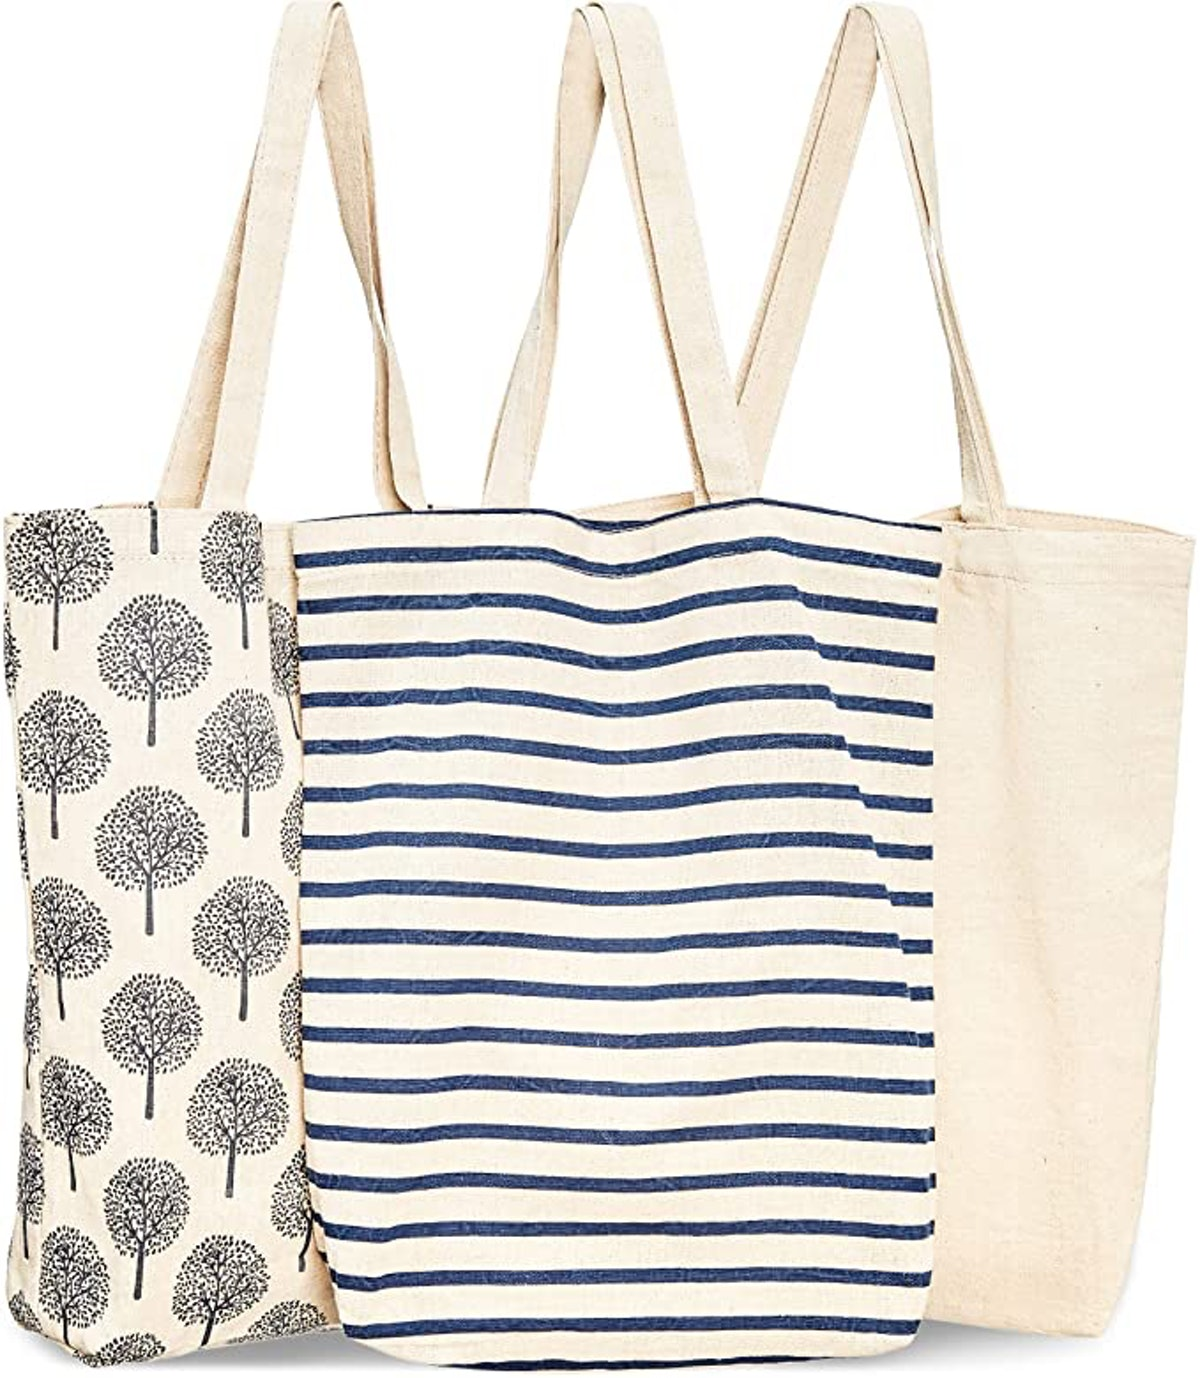 Juvale Reusable Cotton Tote Bags (3 Pack)